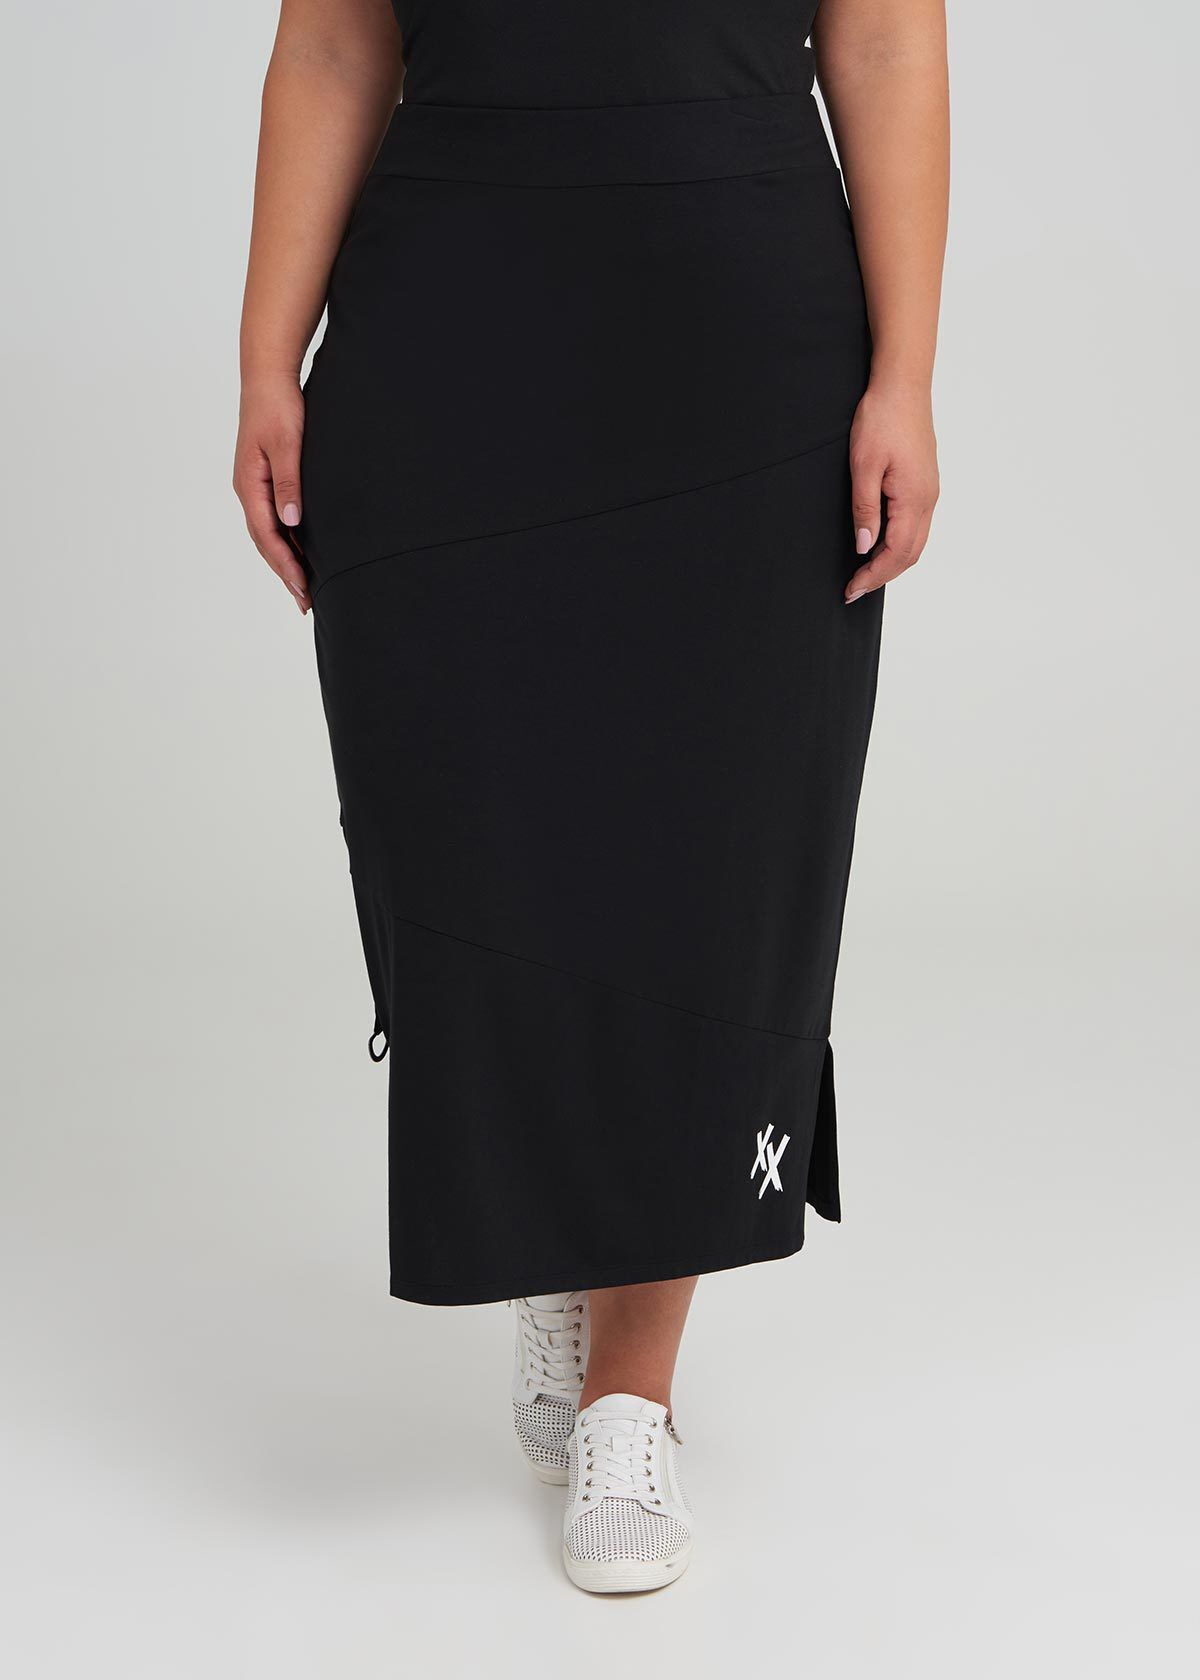 Long Printed Skirts Plus Size Ficts